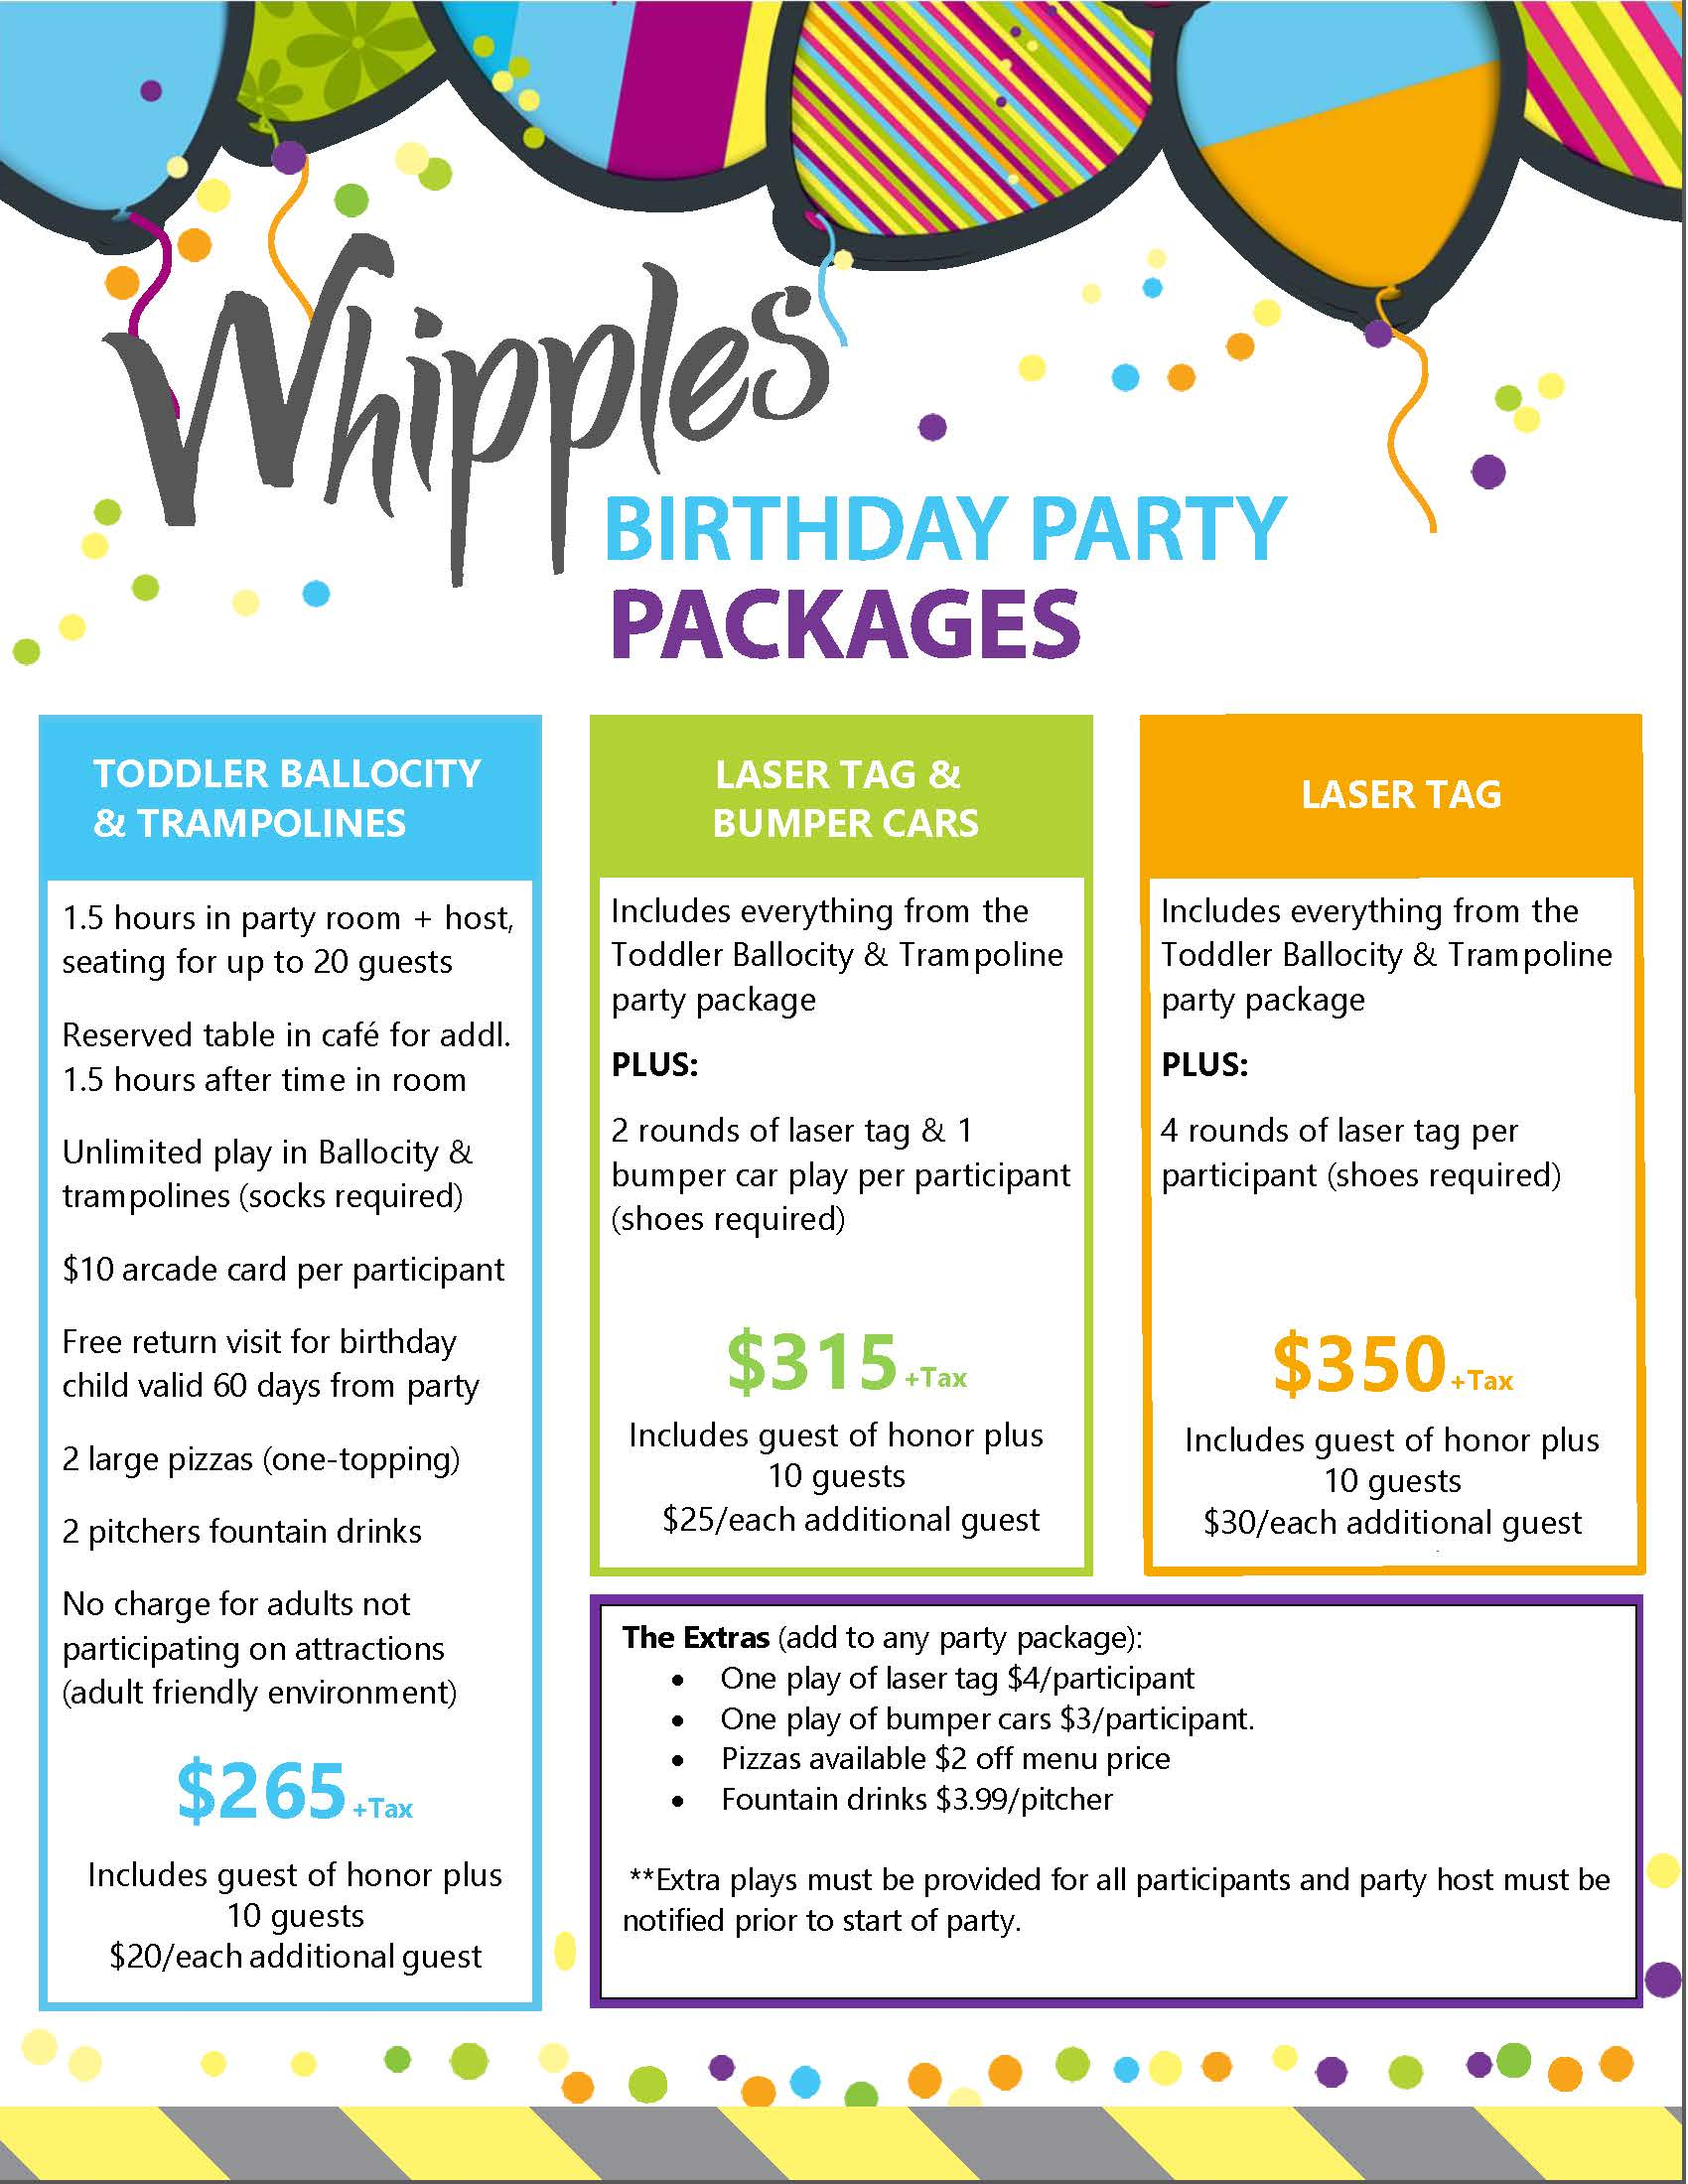 New Birthday Party Package Pricing 7-11-19.jpg